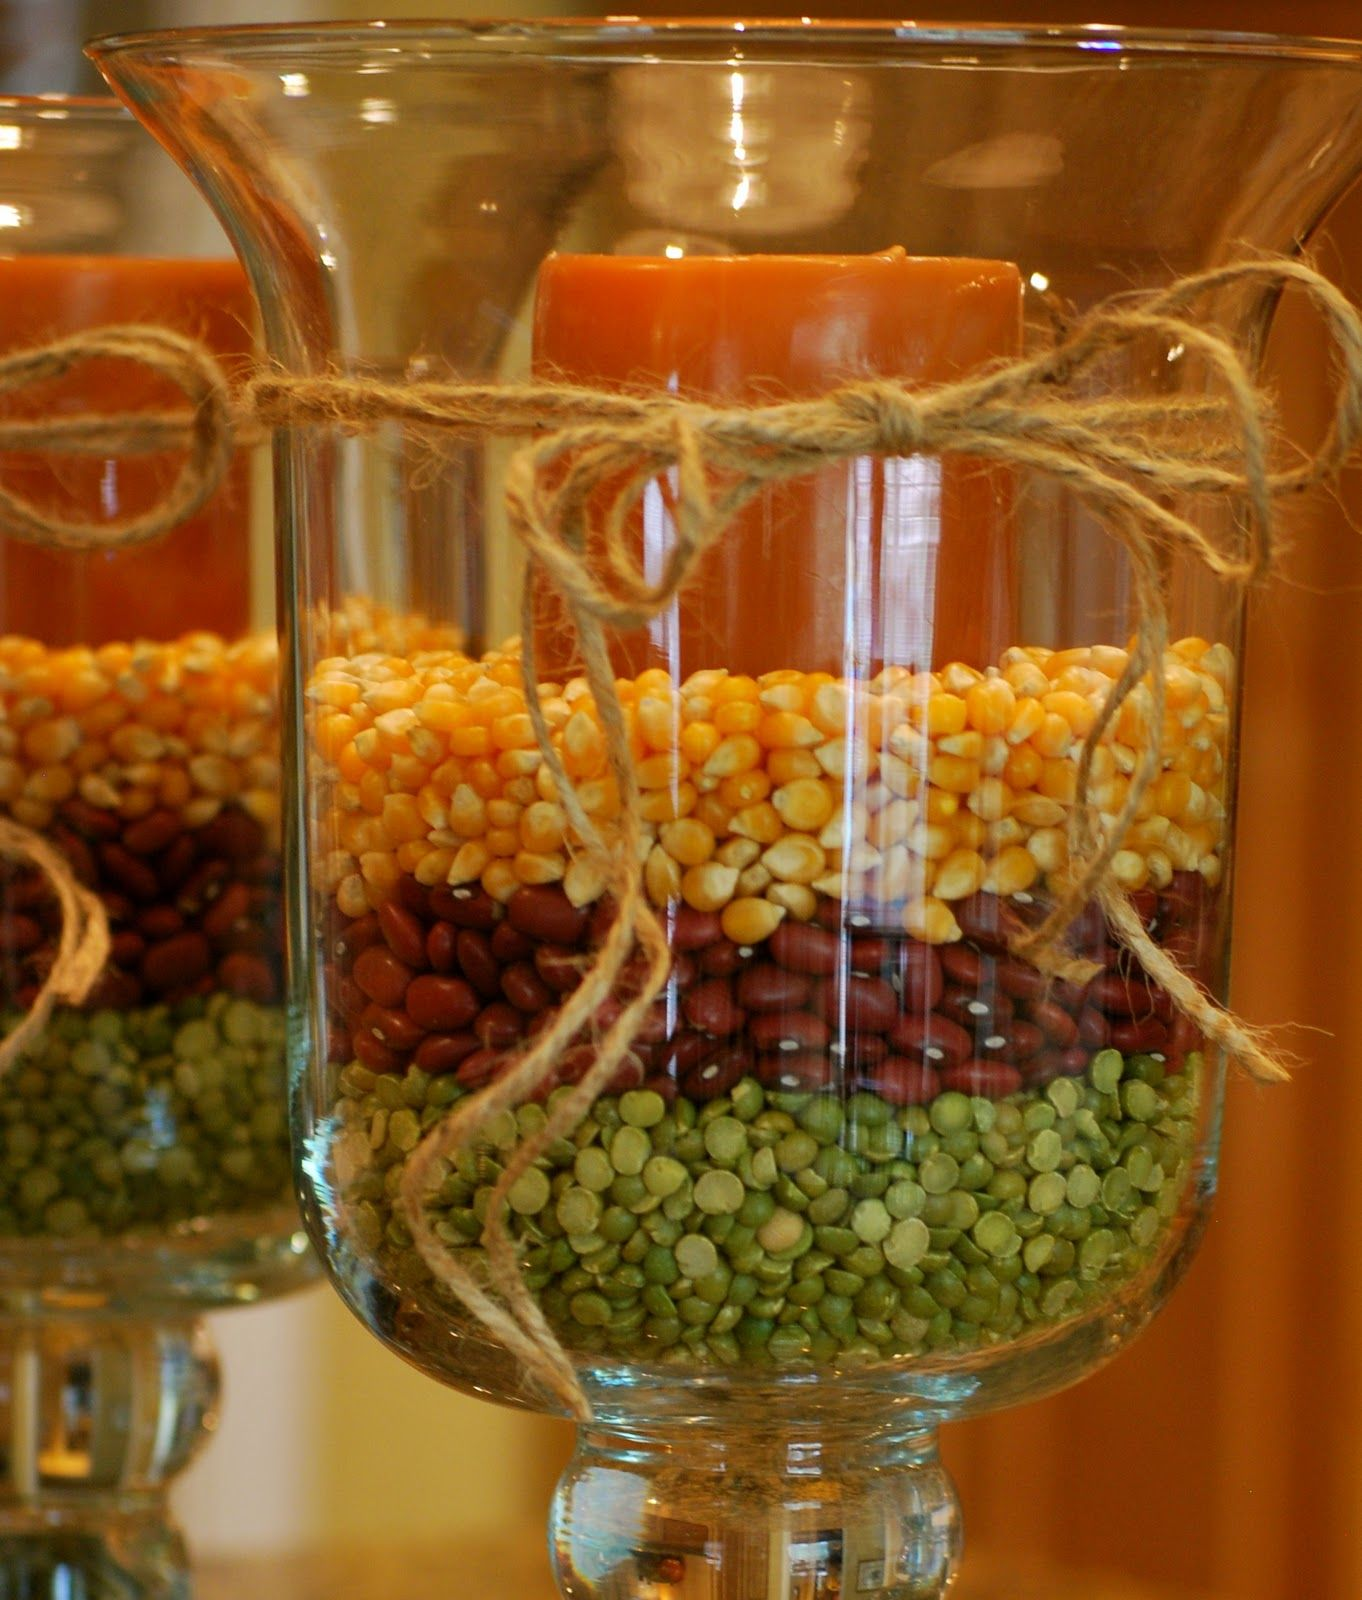 Fall decorating ideas on pinterest - Fall Decorating With Hurricane Vases Using Yellow Popping Corn Small Red Beans And Green Split